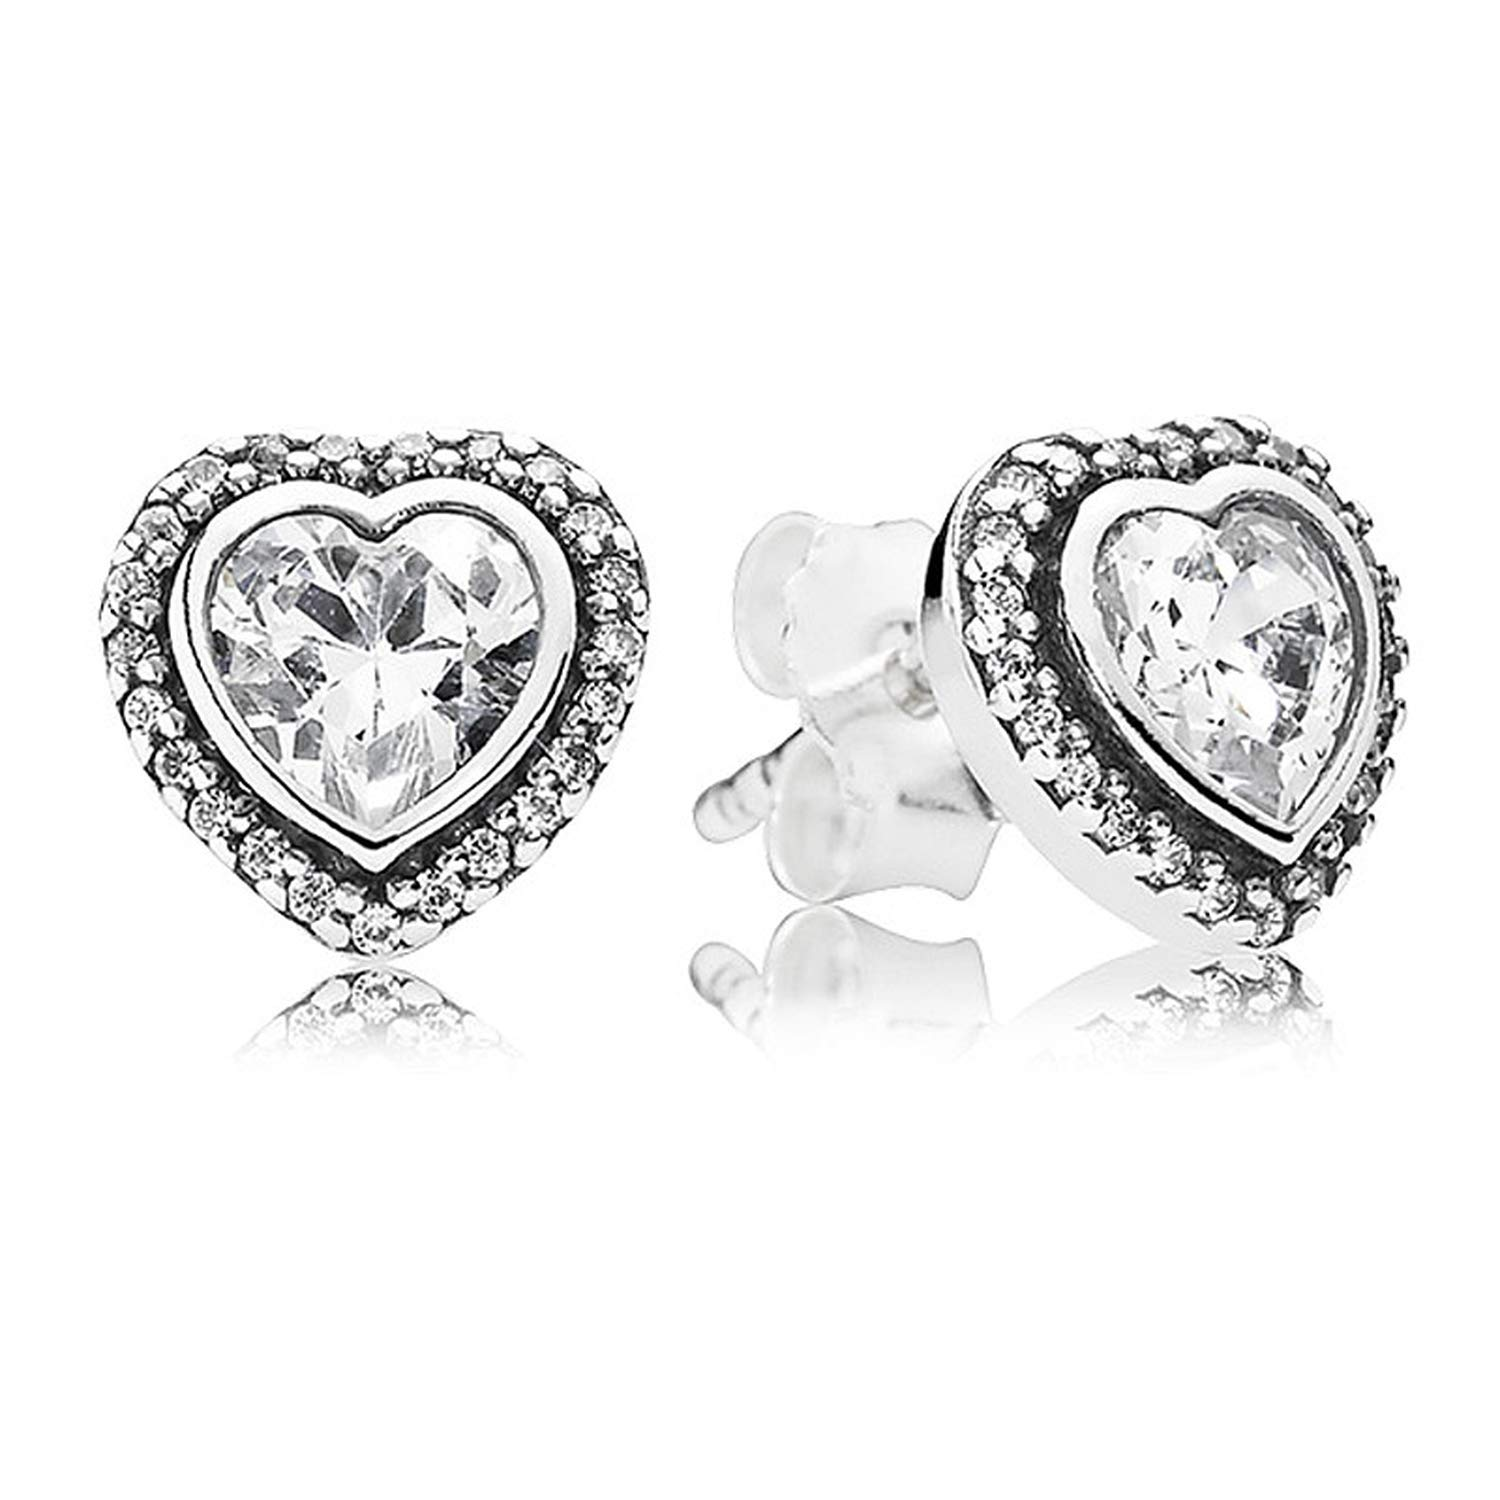 Sparkling Love Knot Petals Of Love 925 Sterling Silver Earrings Studs For Women Wedding Party Gift